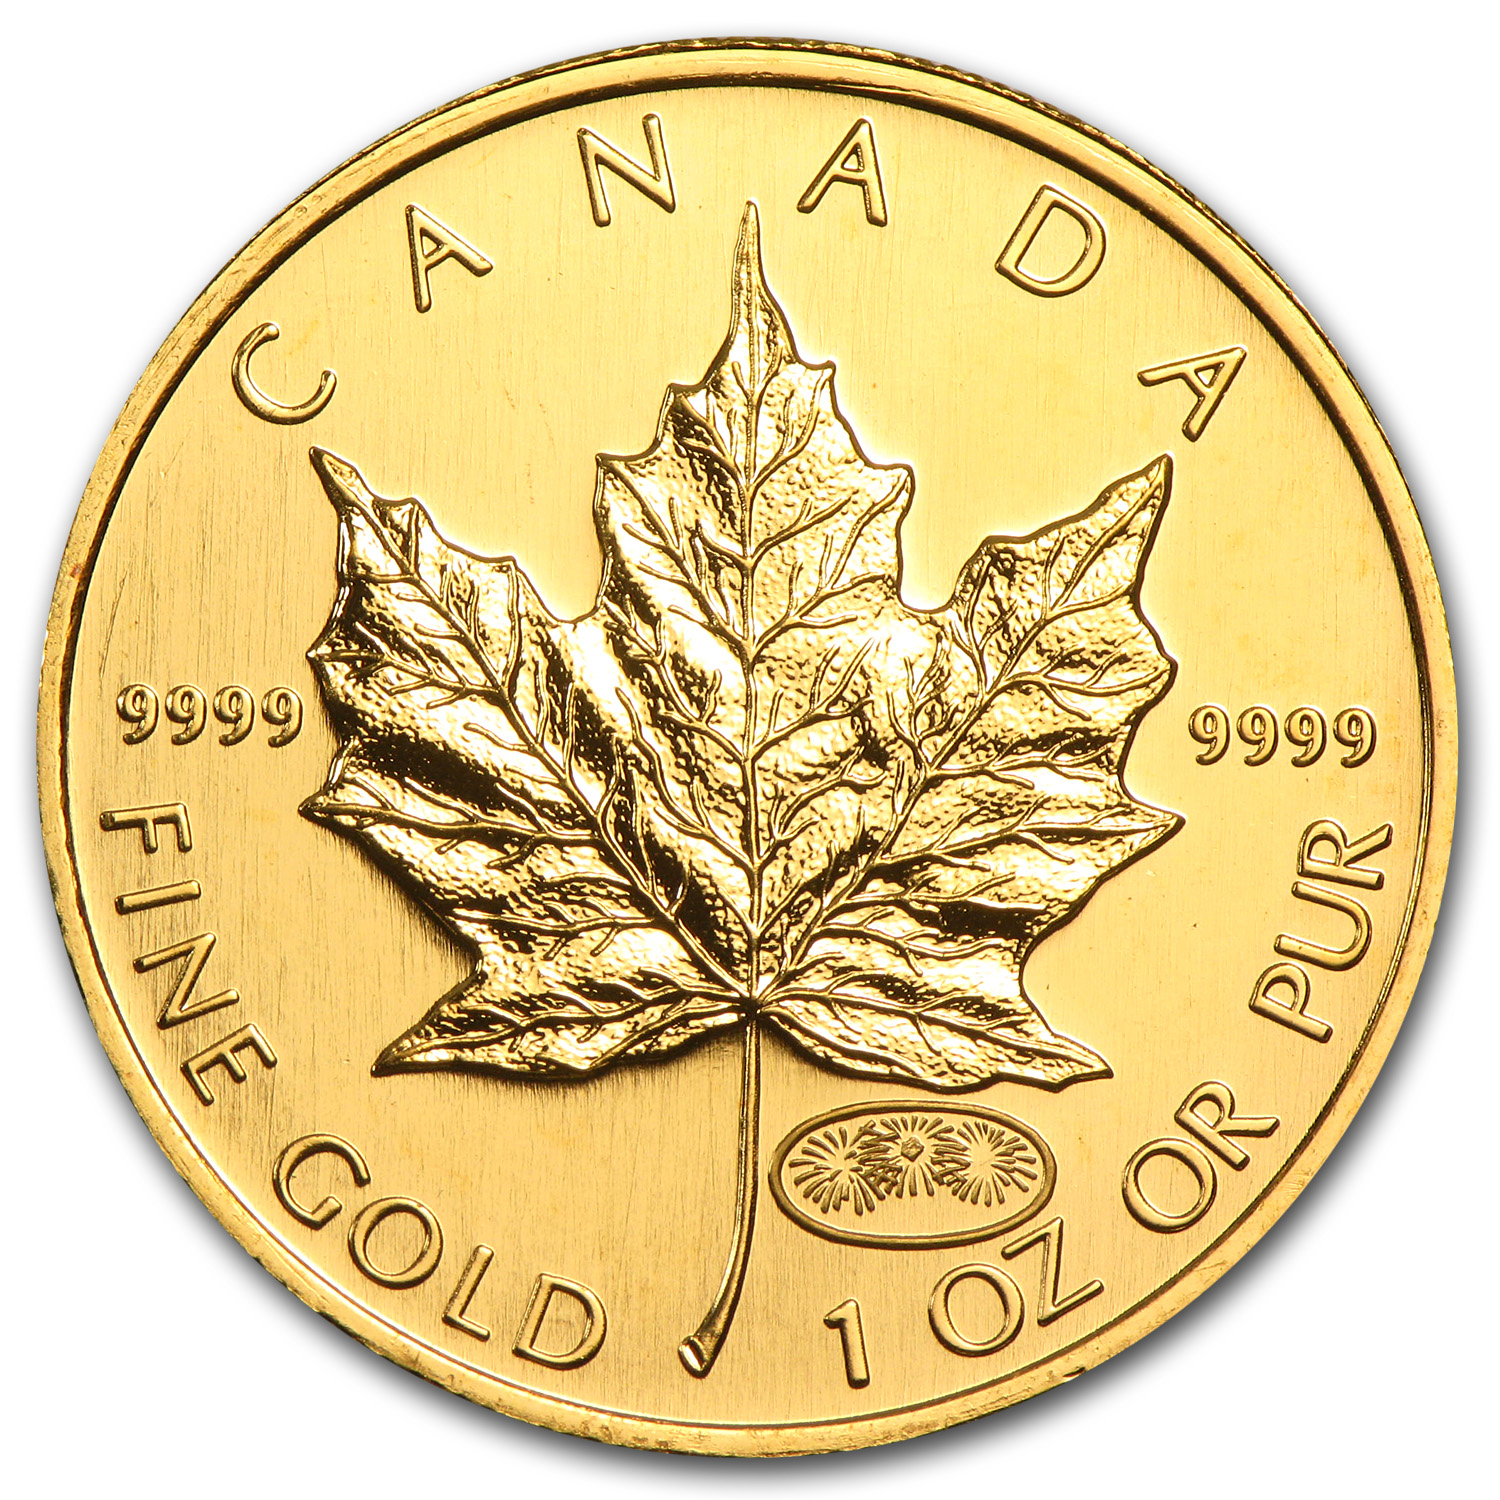 1999/2000 1 oz Gold Canadian Maple Leaf - Fireworks Privy (BU)